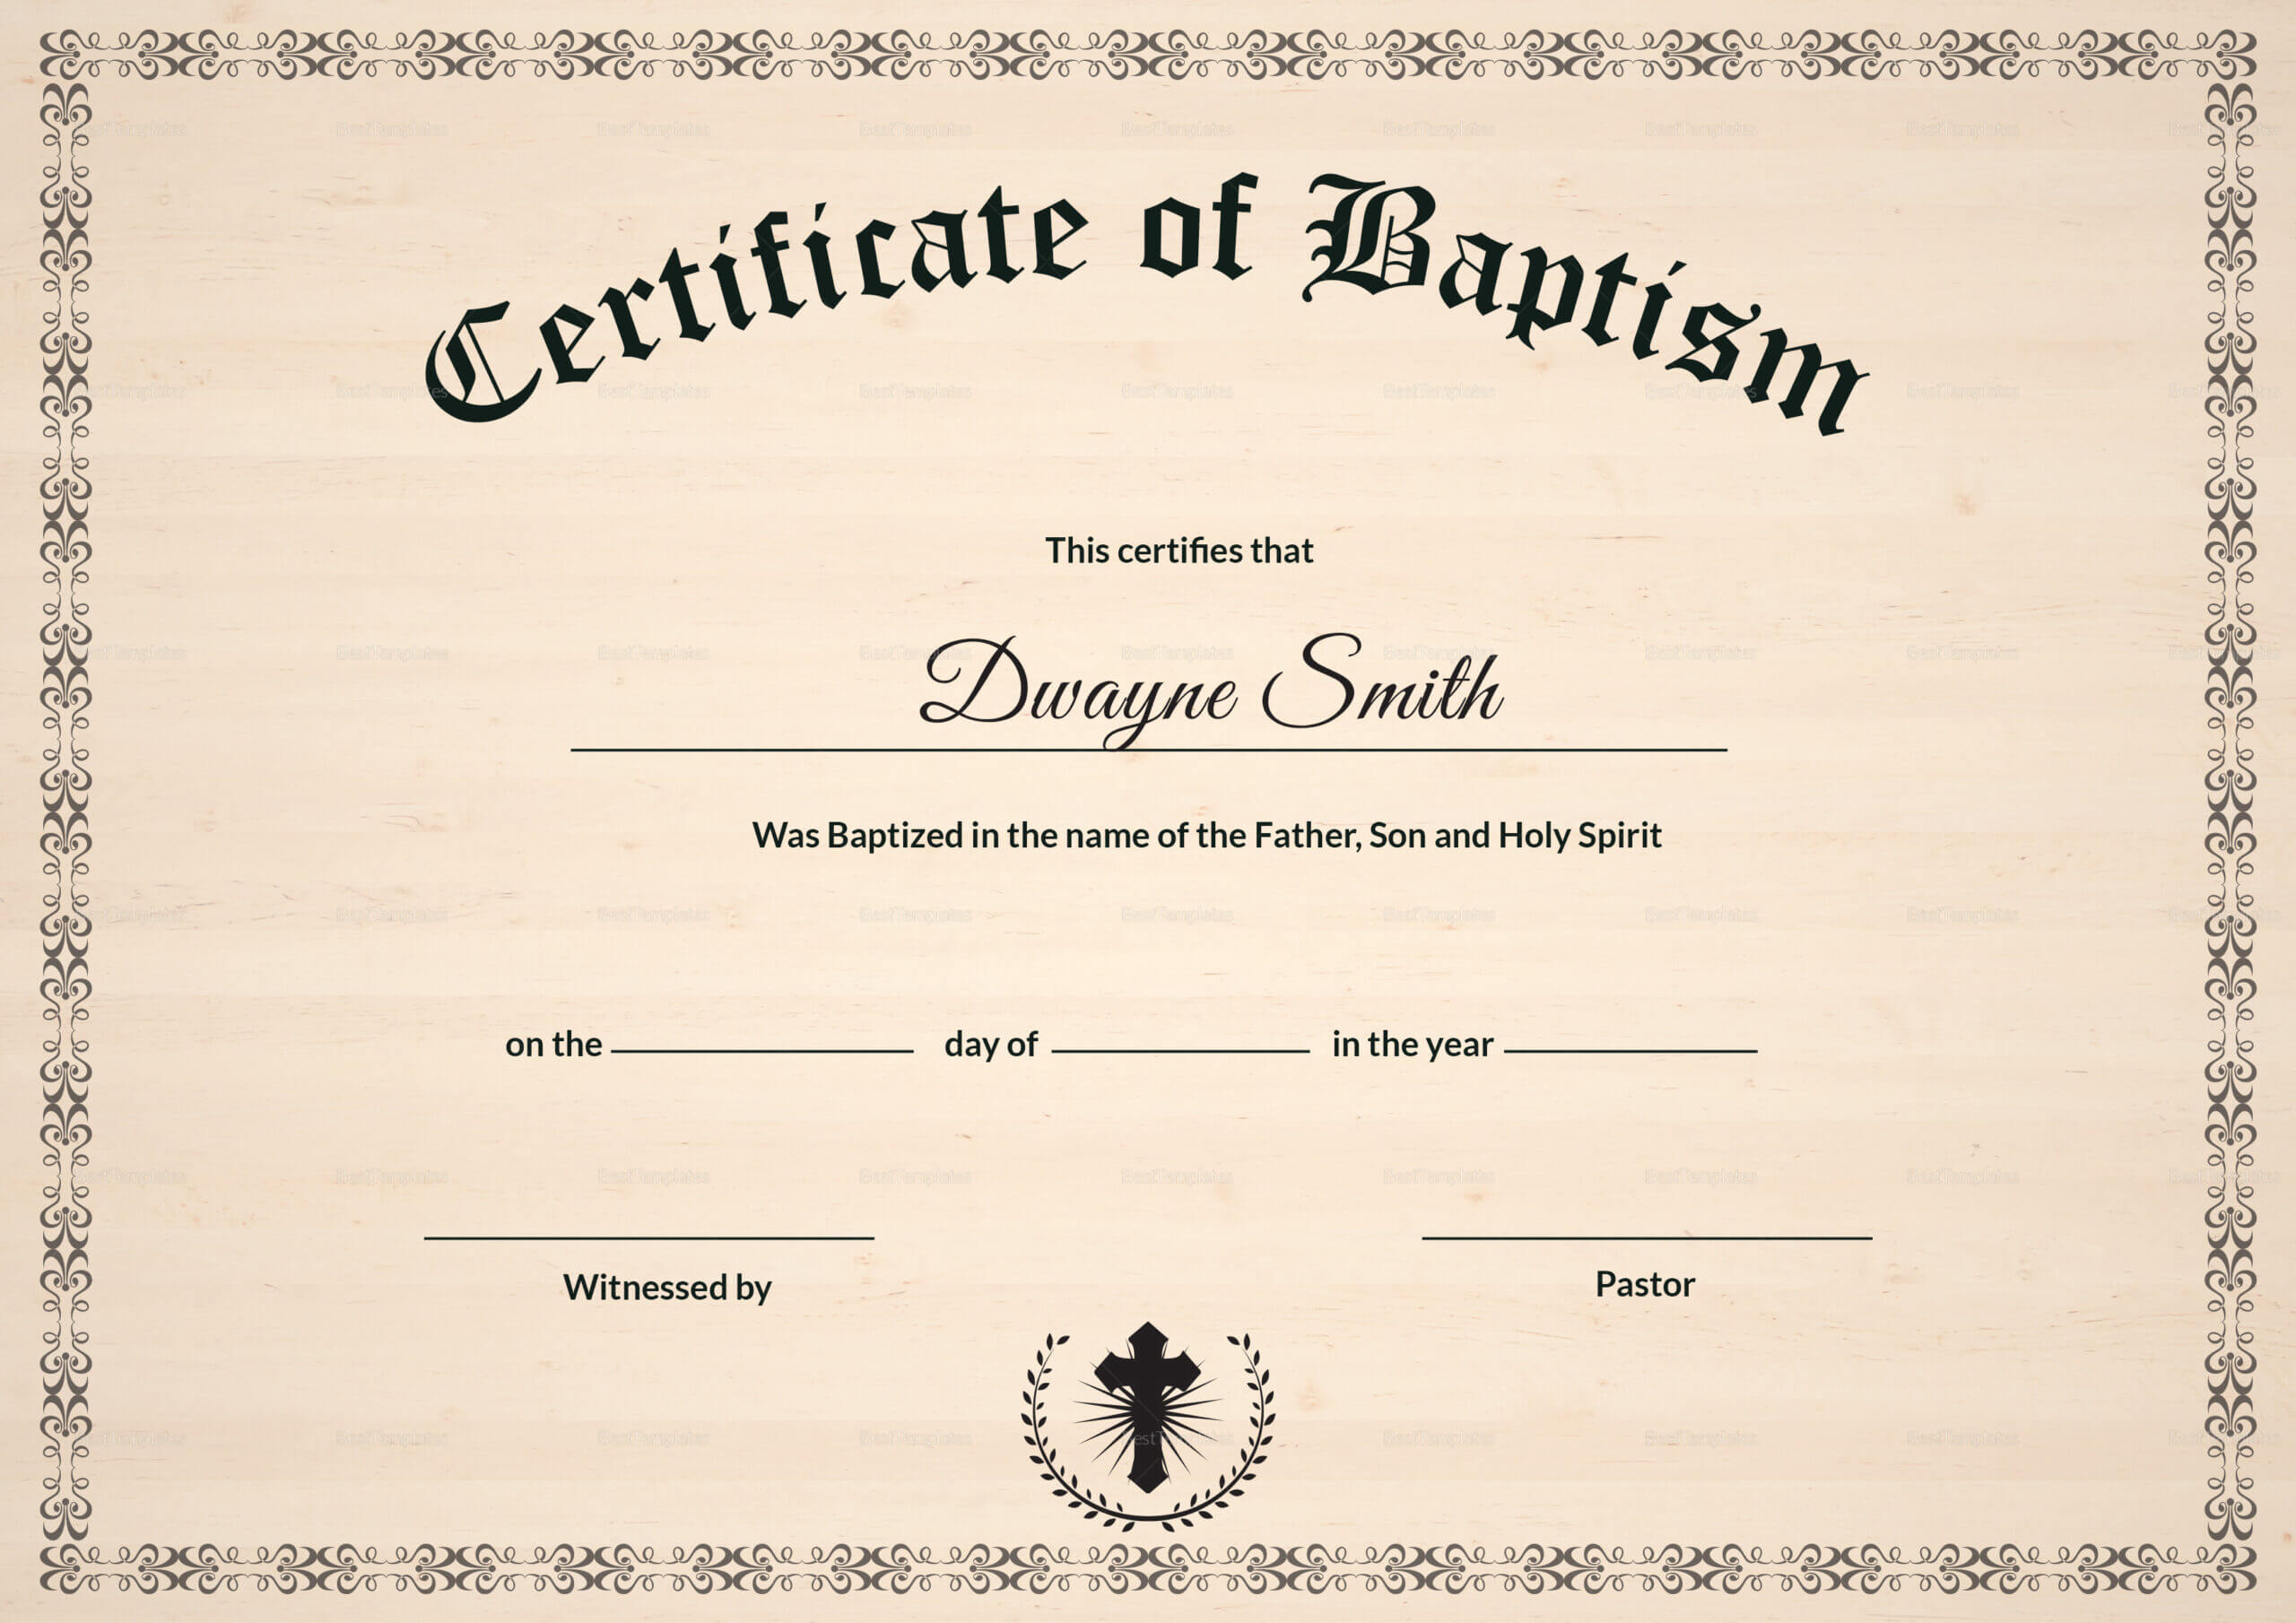 Baptism Certificate Template Download - Bolan Throughout Baptism Certificate Template Download